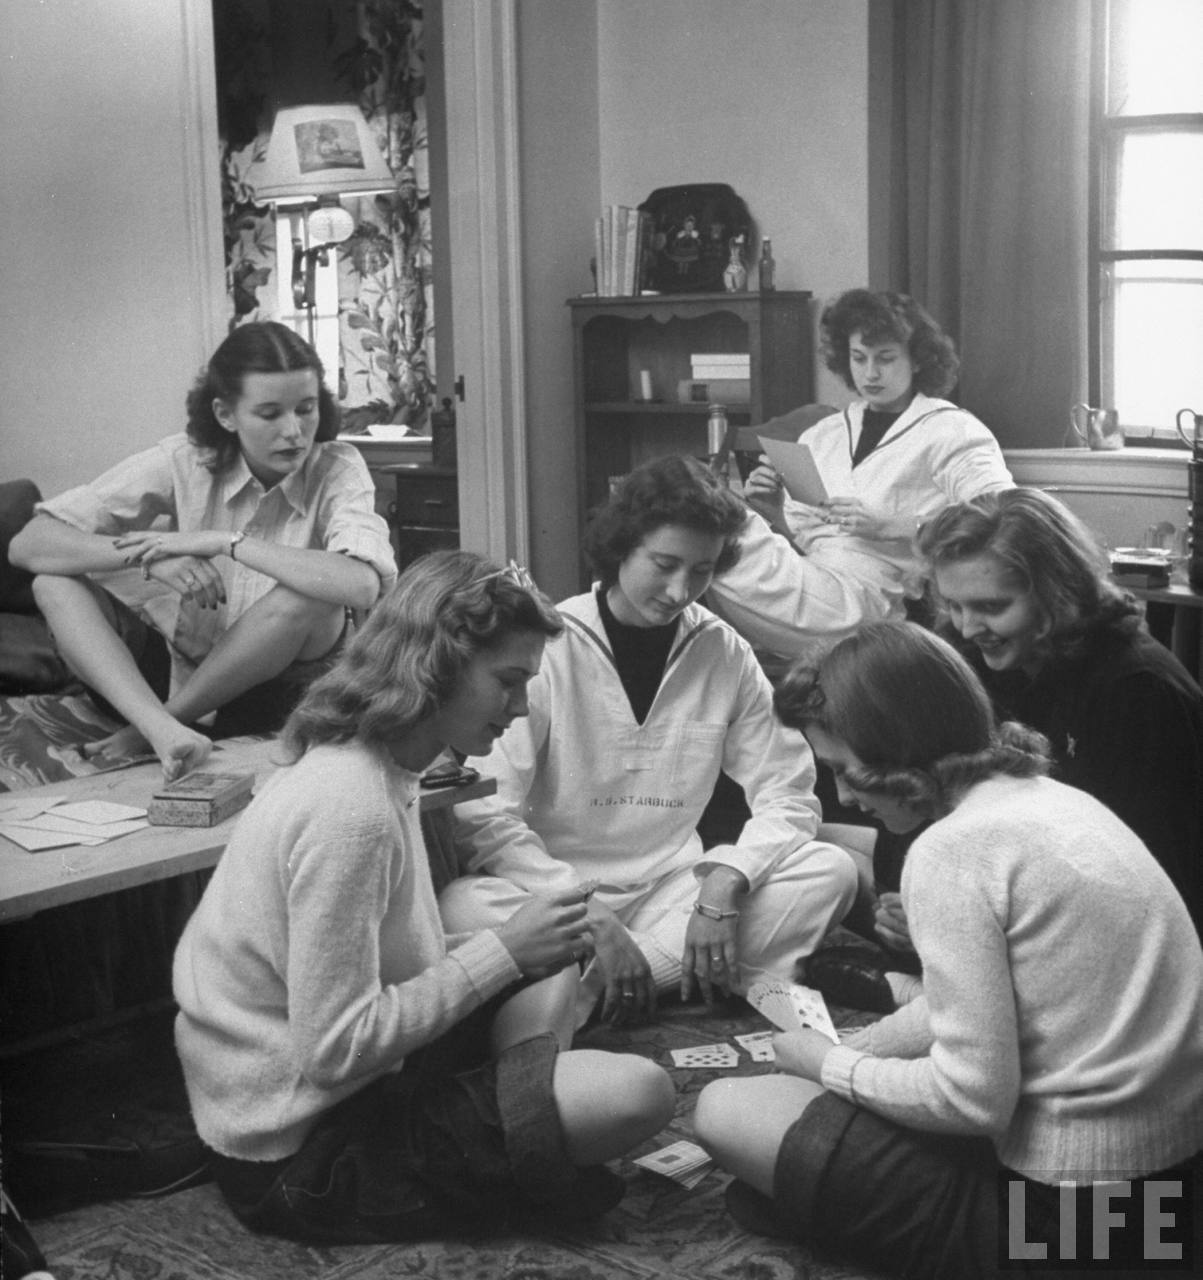 College girls playing cards in their room.